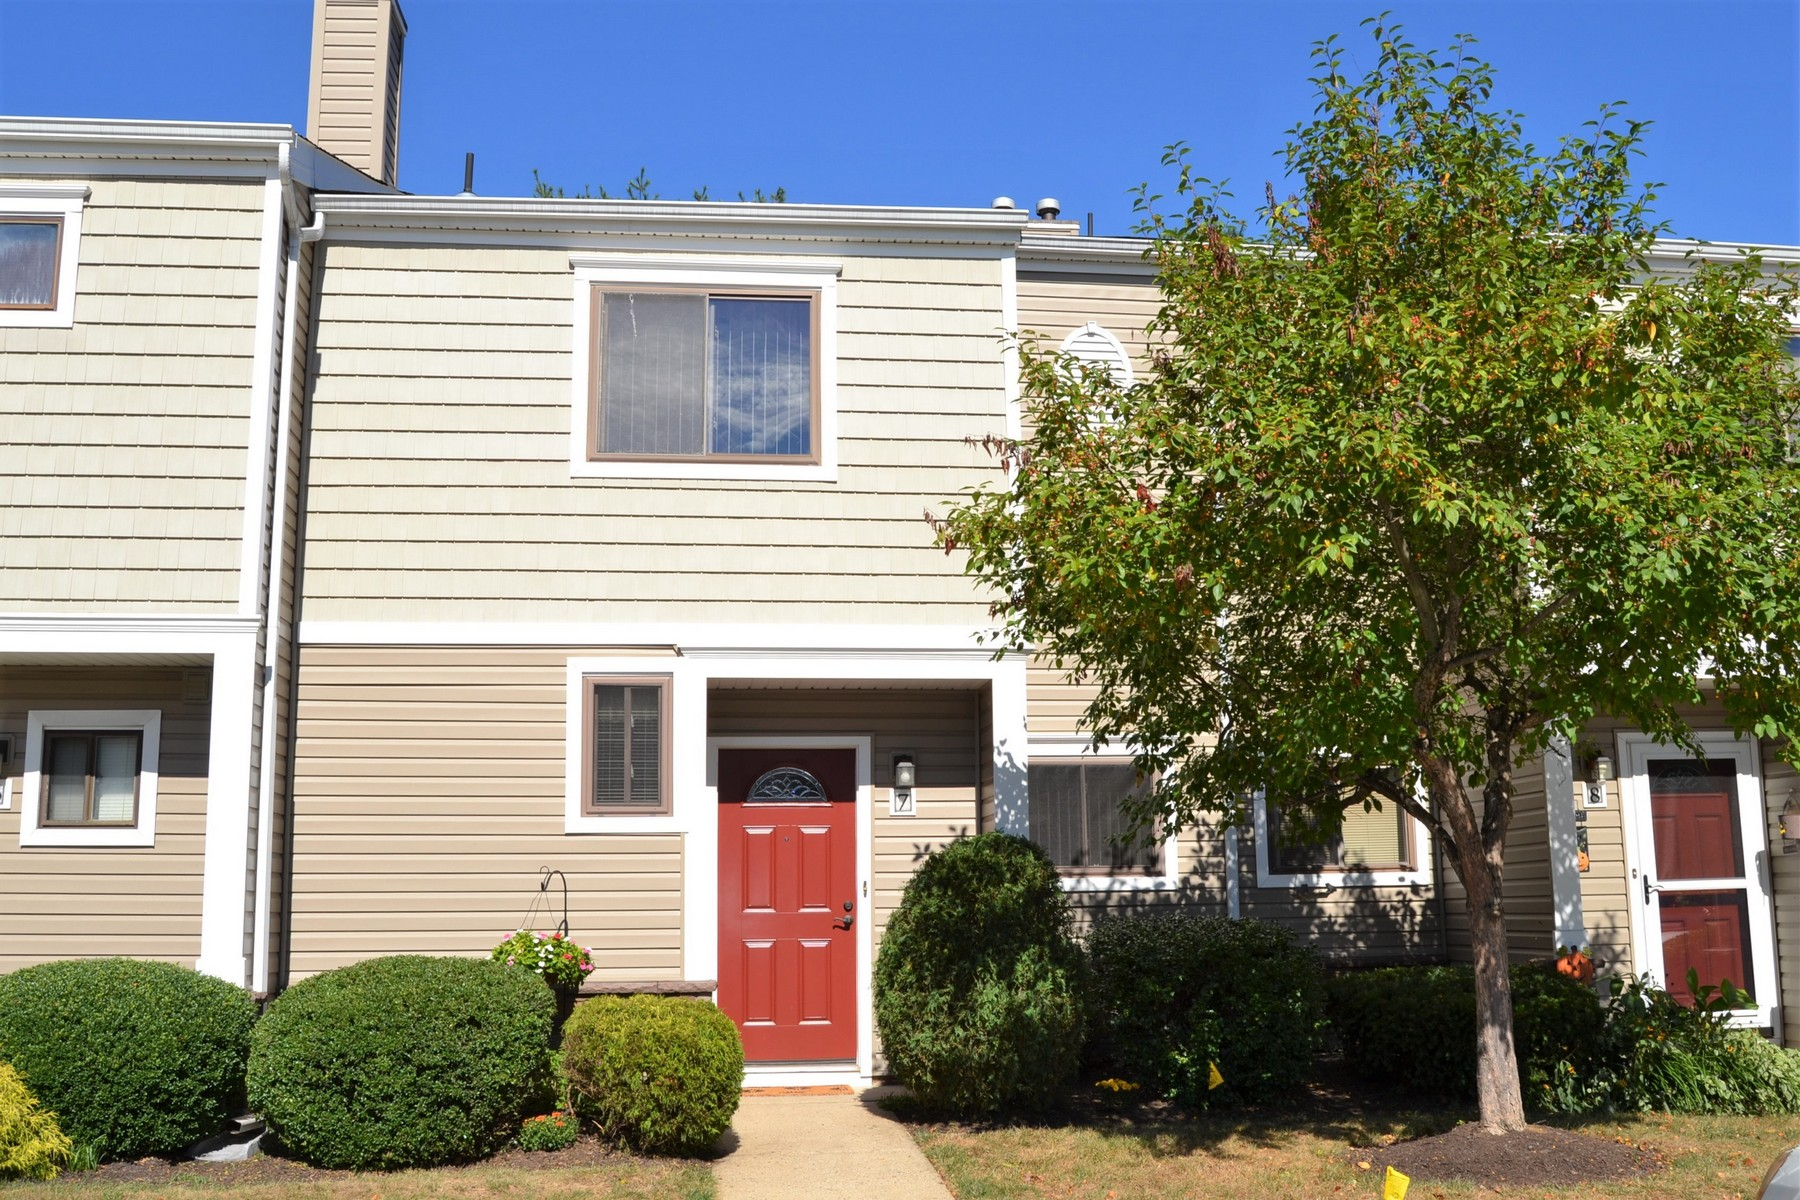 Townhouse for Sale at Winding Brook Townhome 7 Elizabeth Ct Eatontown, New Jersey 07724 United States